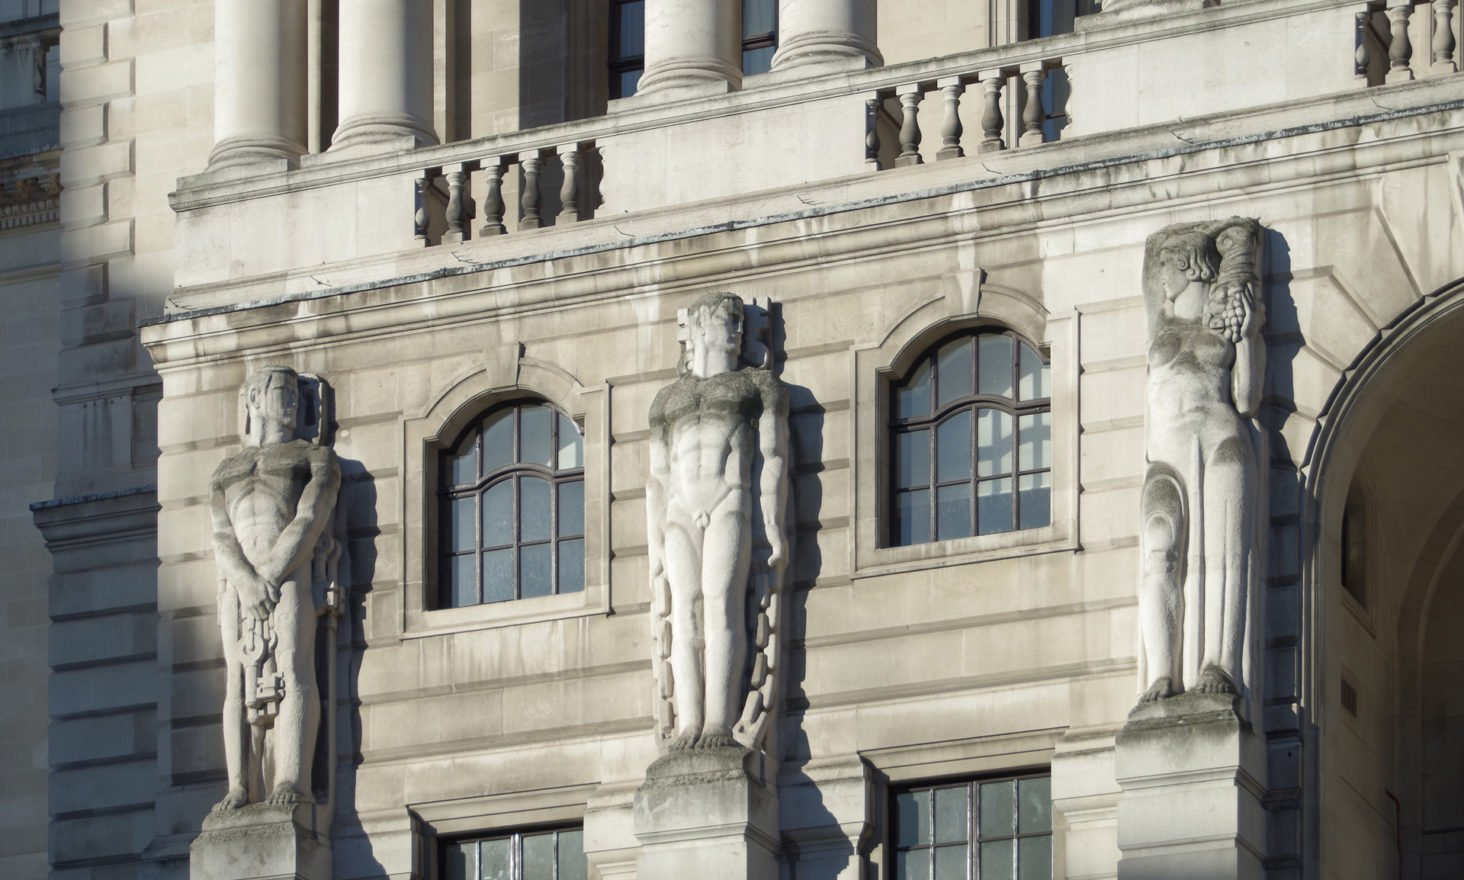 Bank of England Nocoiner Admits 'Cryptocurrency Not a Risk'